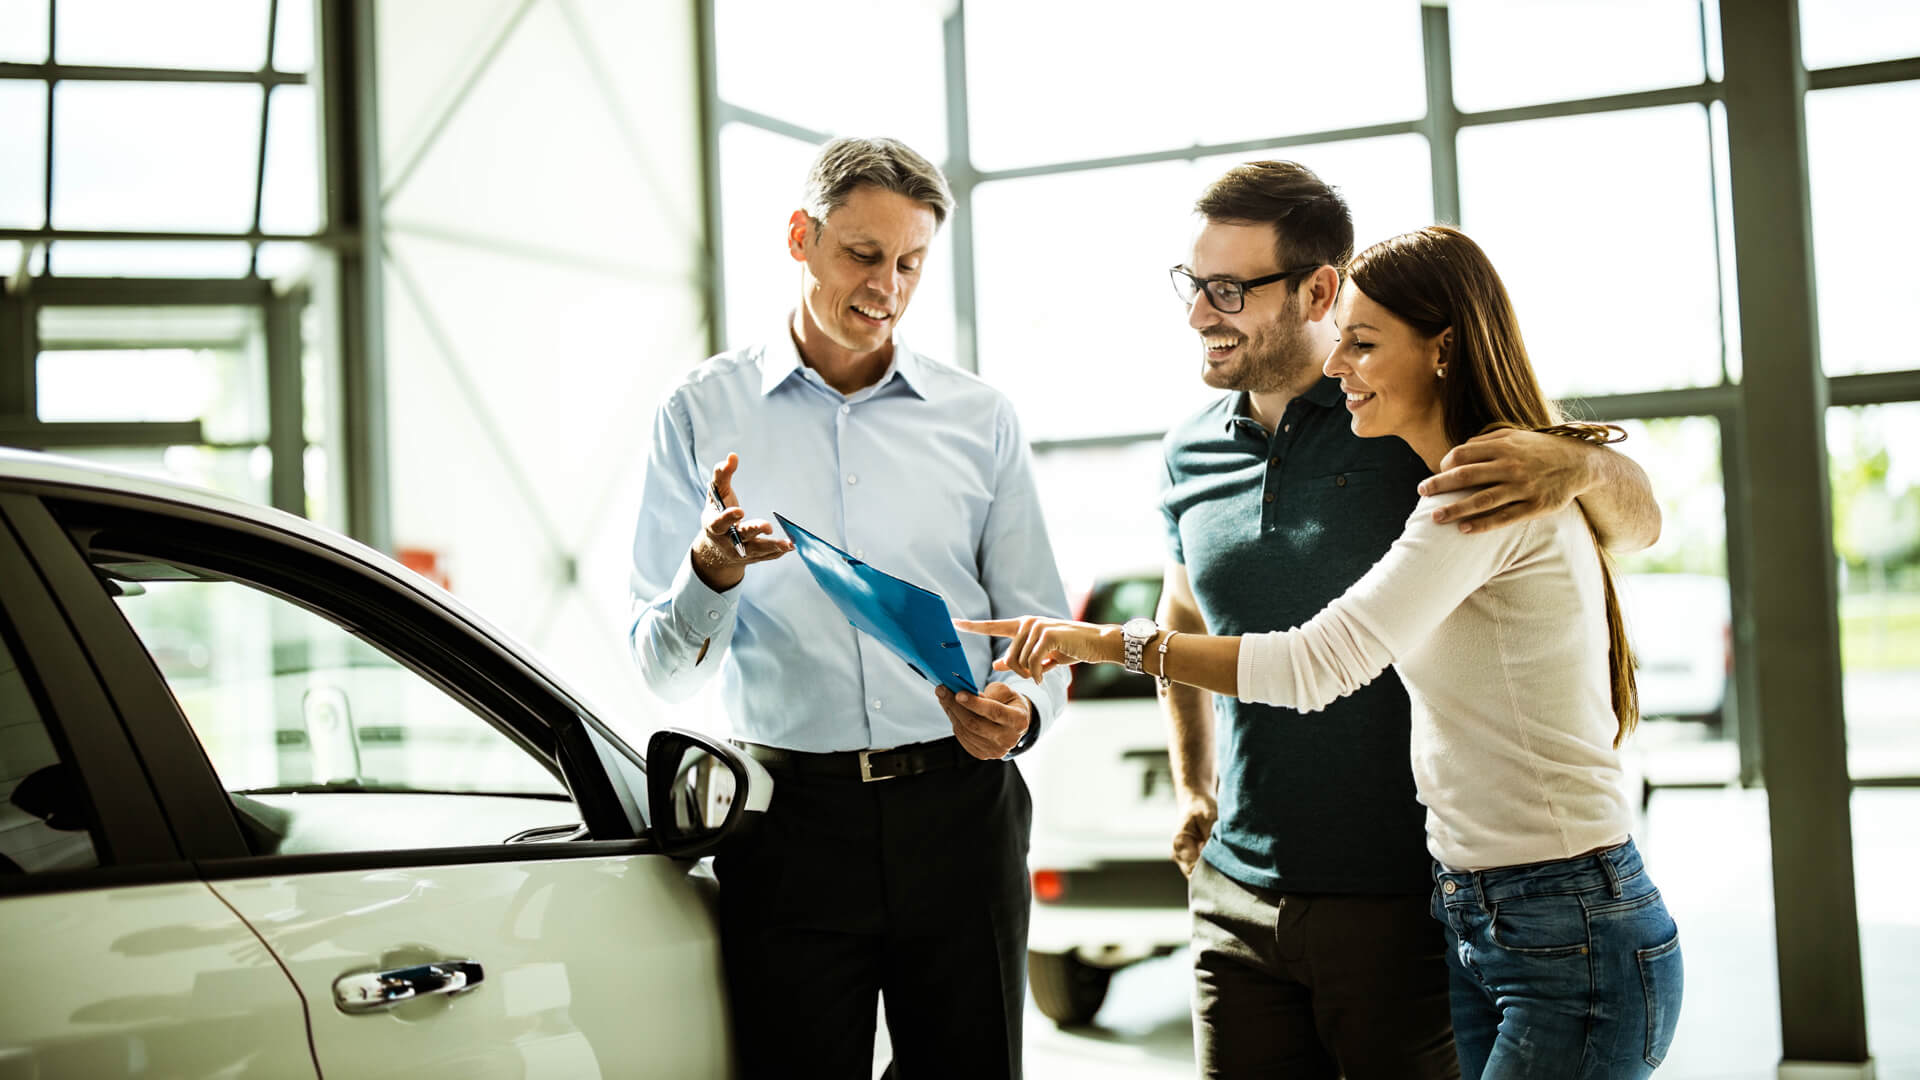 Don't Pay For These 20 Useless Things at Car Dealerships | GOBankingRates